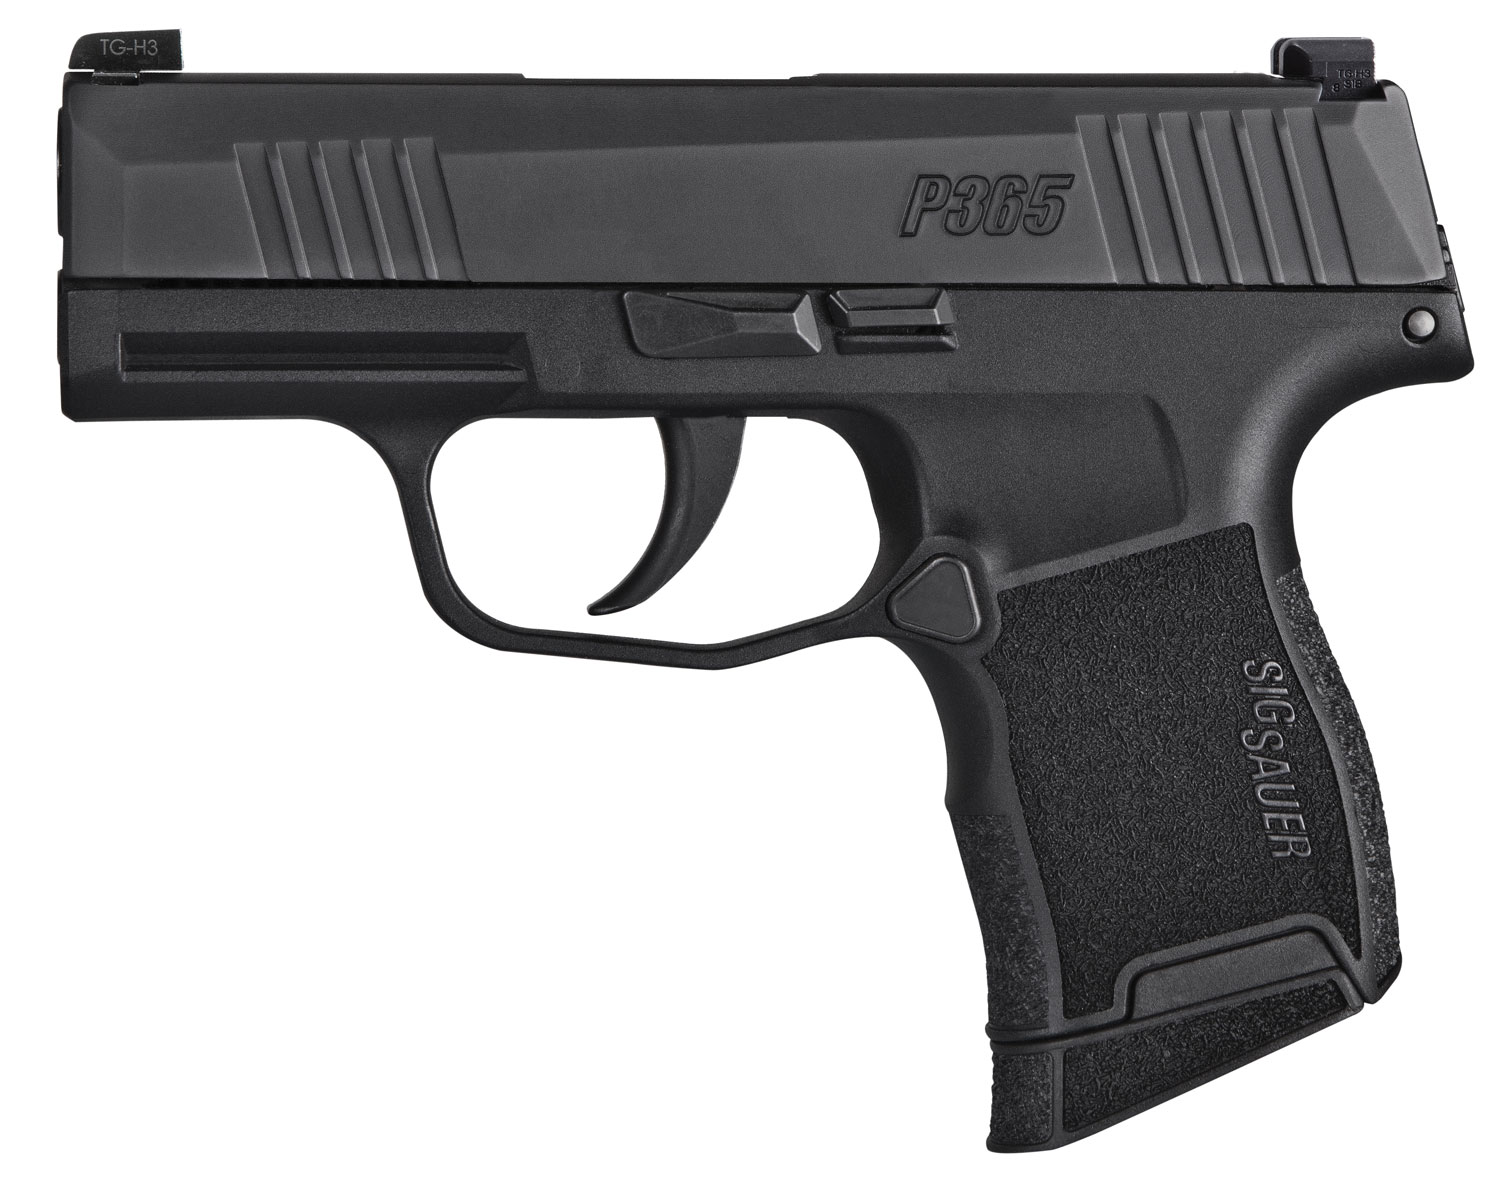 Sig Sauer P365 Micro Compact Pistol 3659BXR3, 9mm, 3.1 in, 10+1